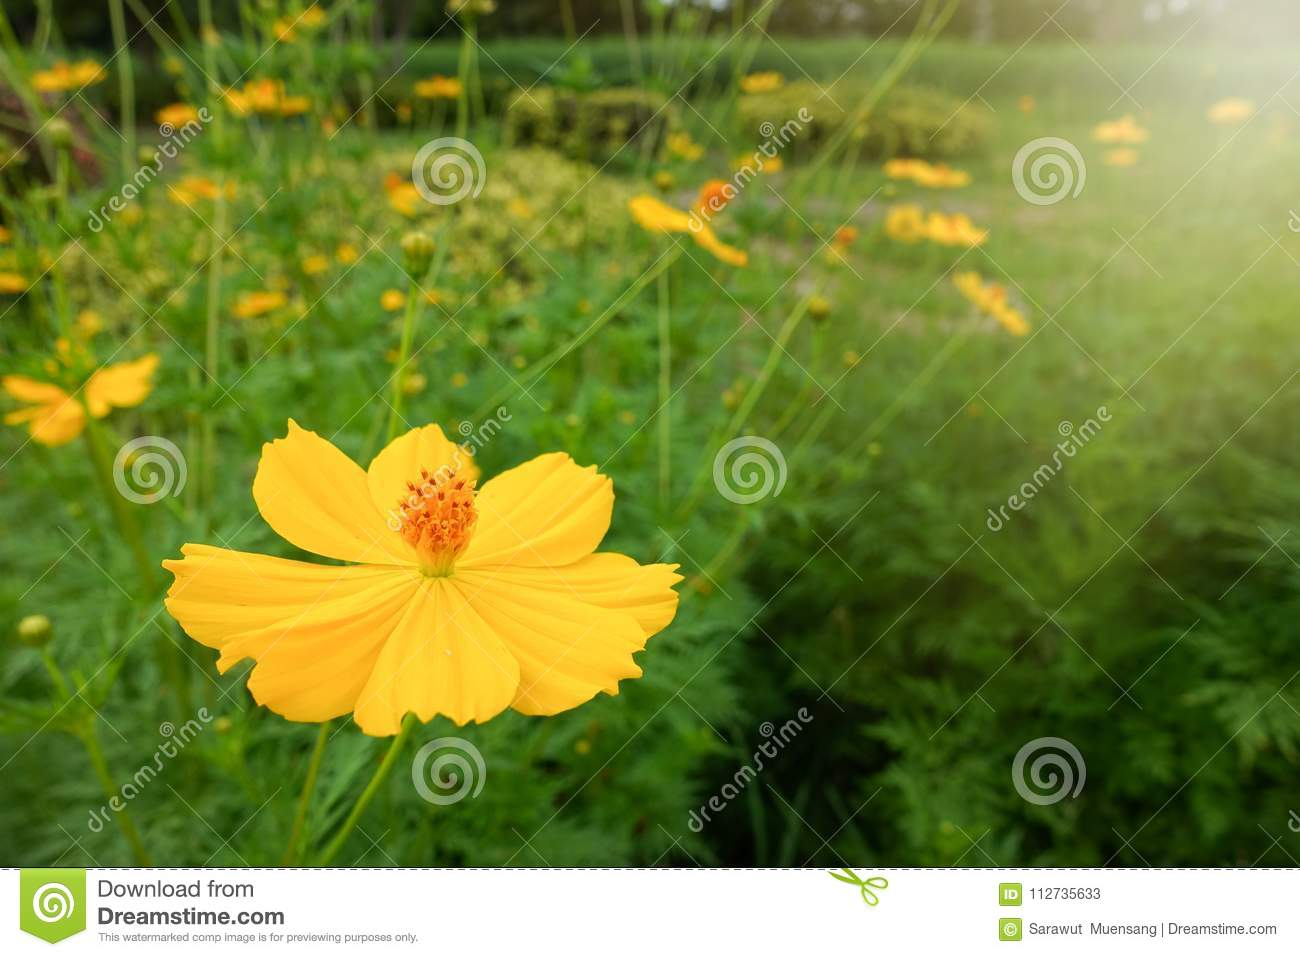 Yellow cosmos flower stock image image of cleaning 112735633 yellow cosmos flower mightylinksfo